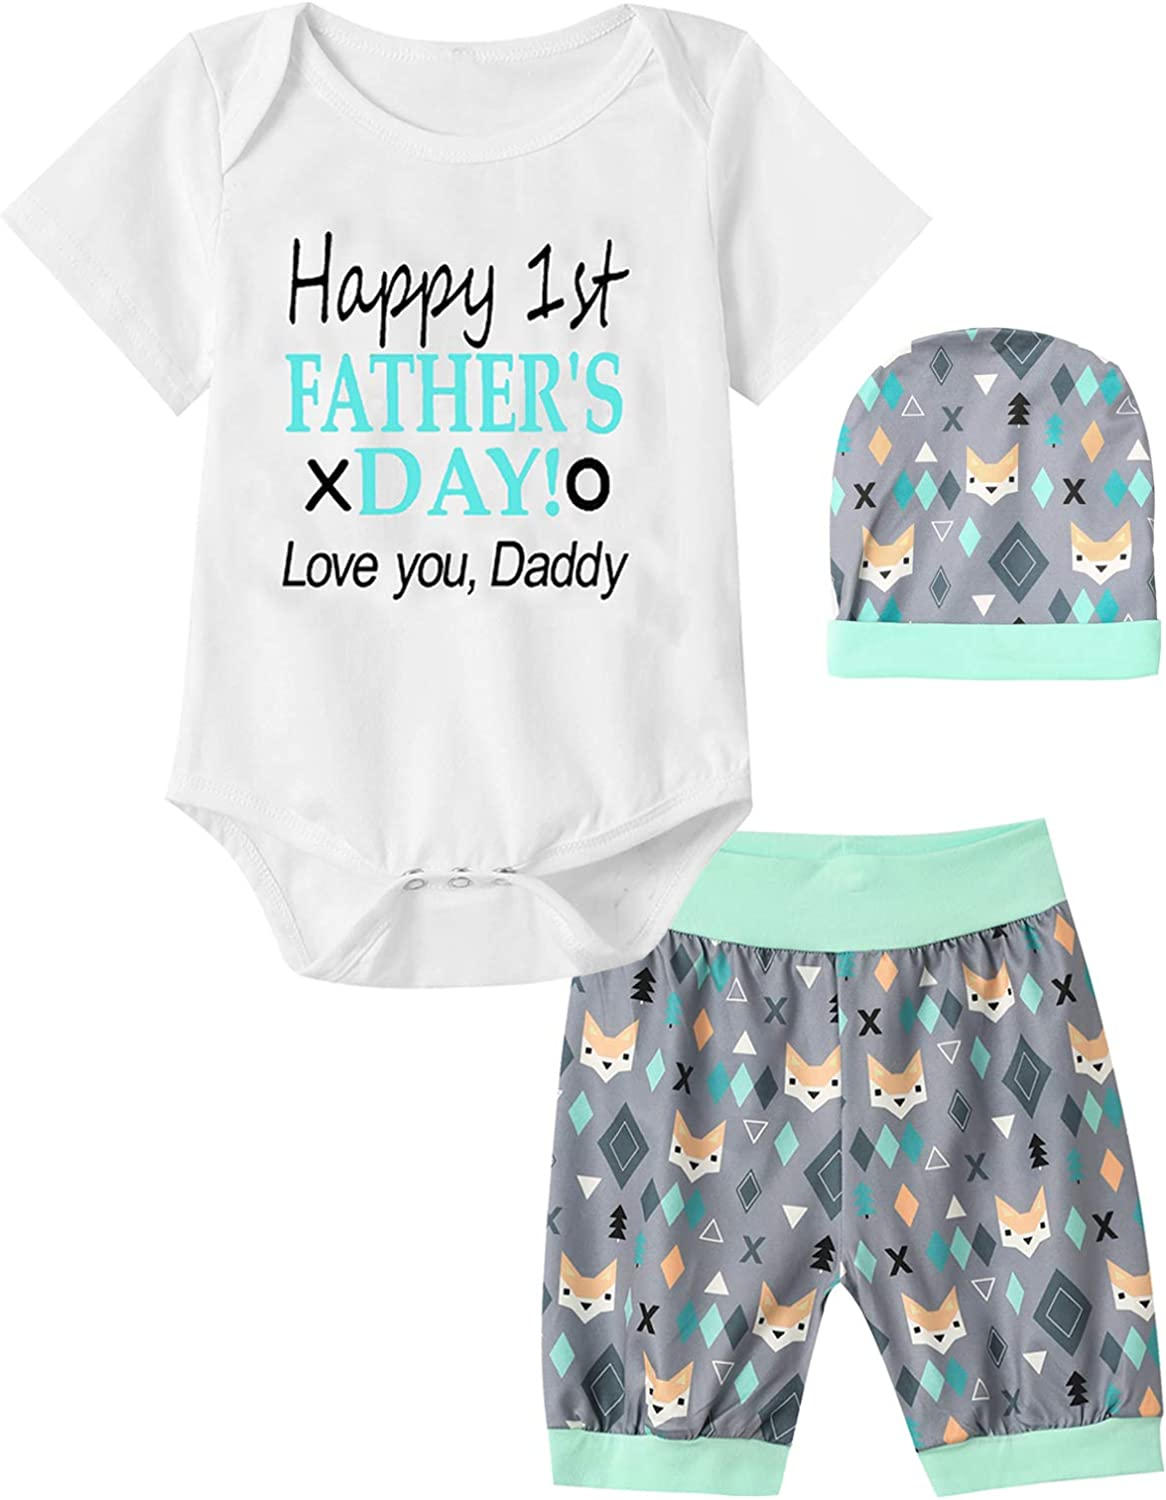 Dramiposs Happy 1st Father's Day Outfit Set Baby Boys Funny Fox Short Sets